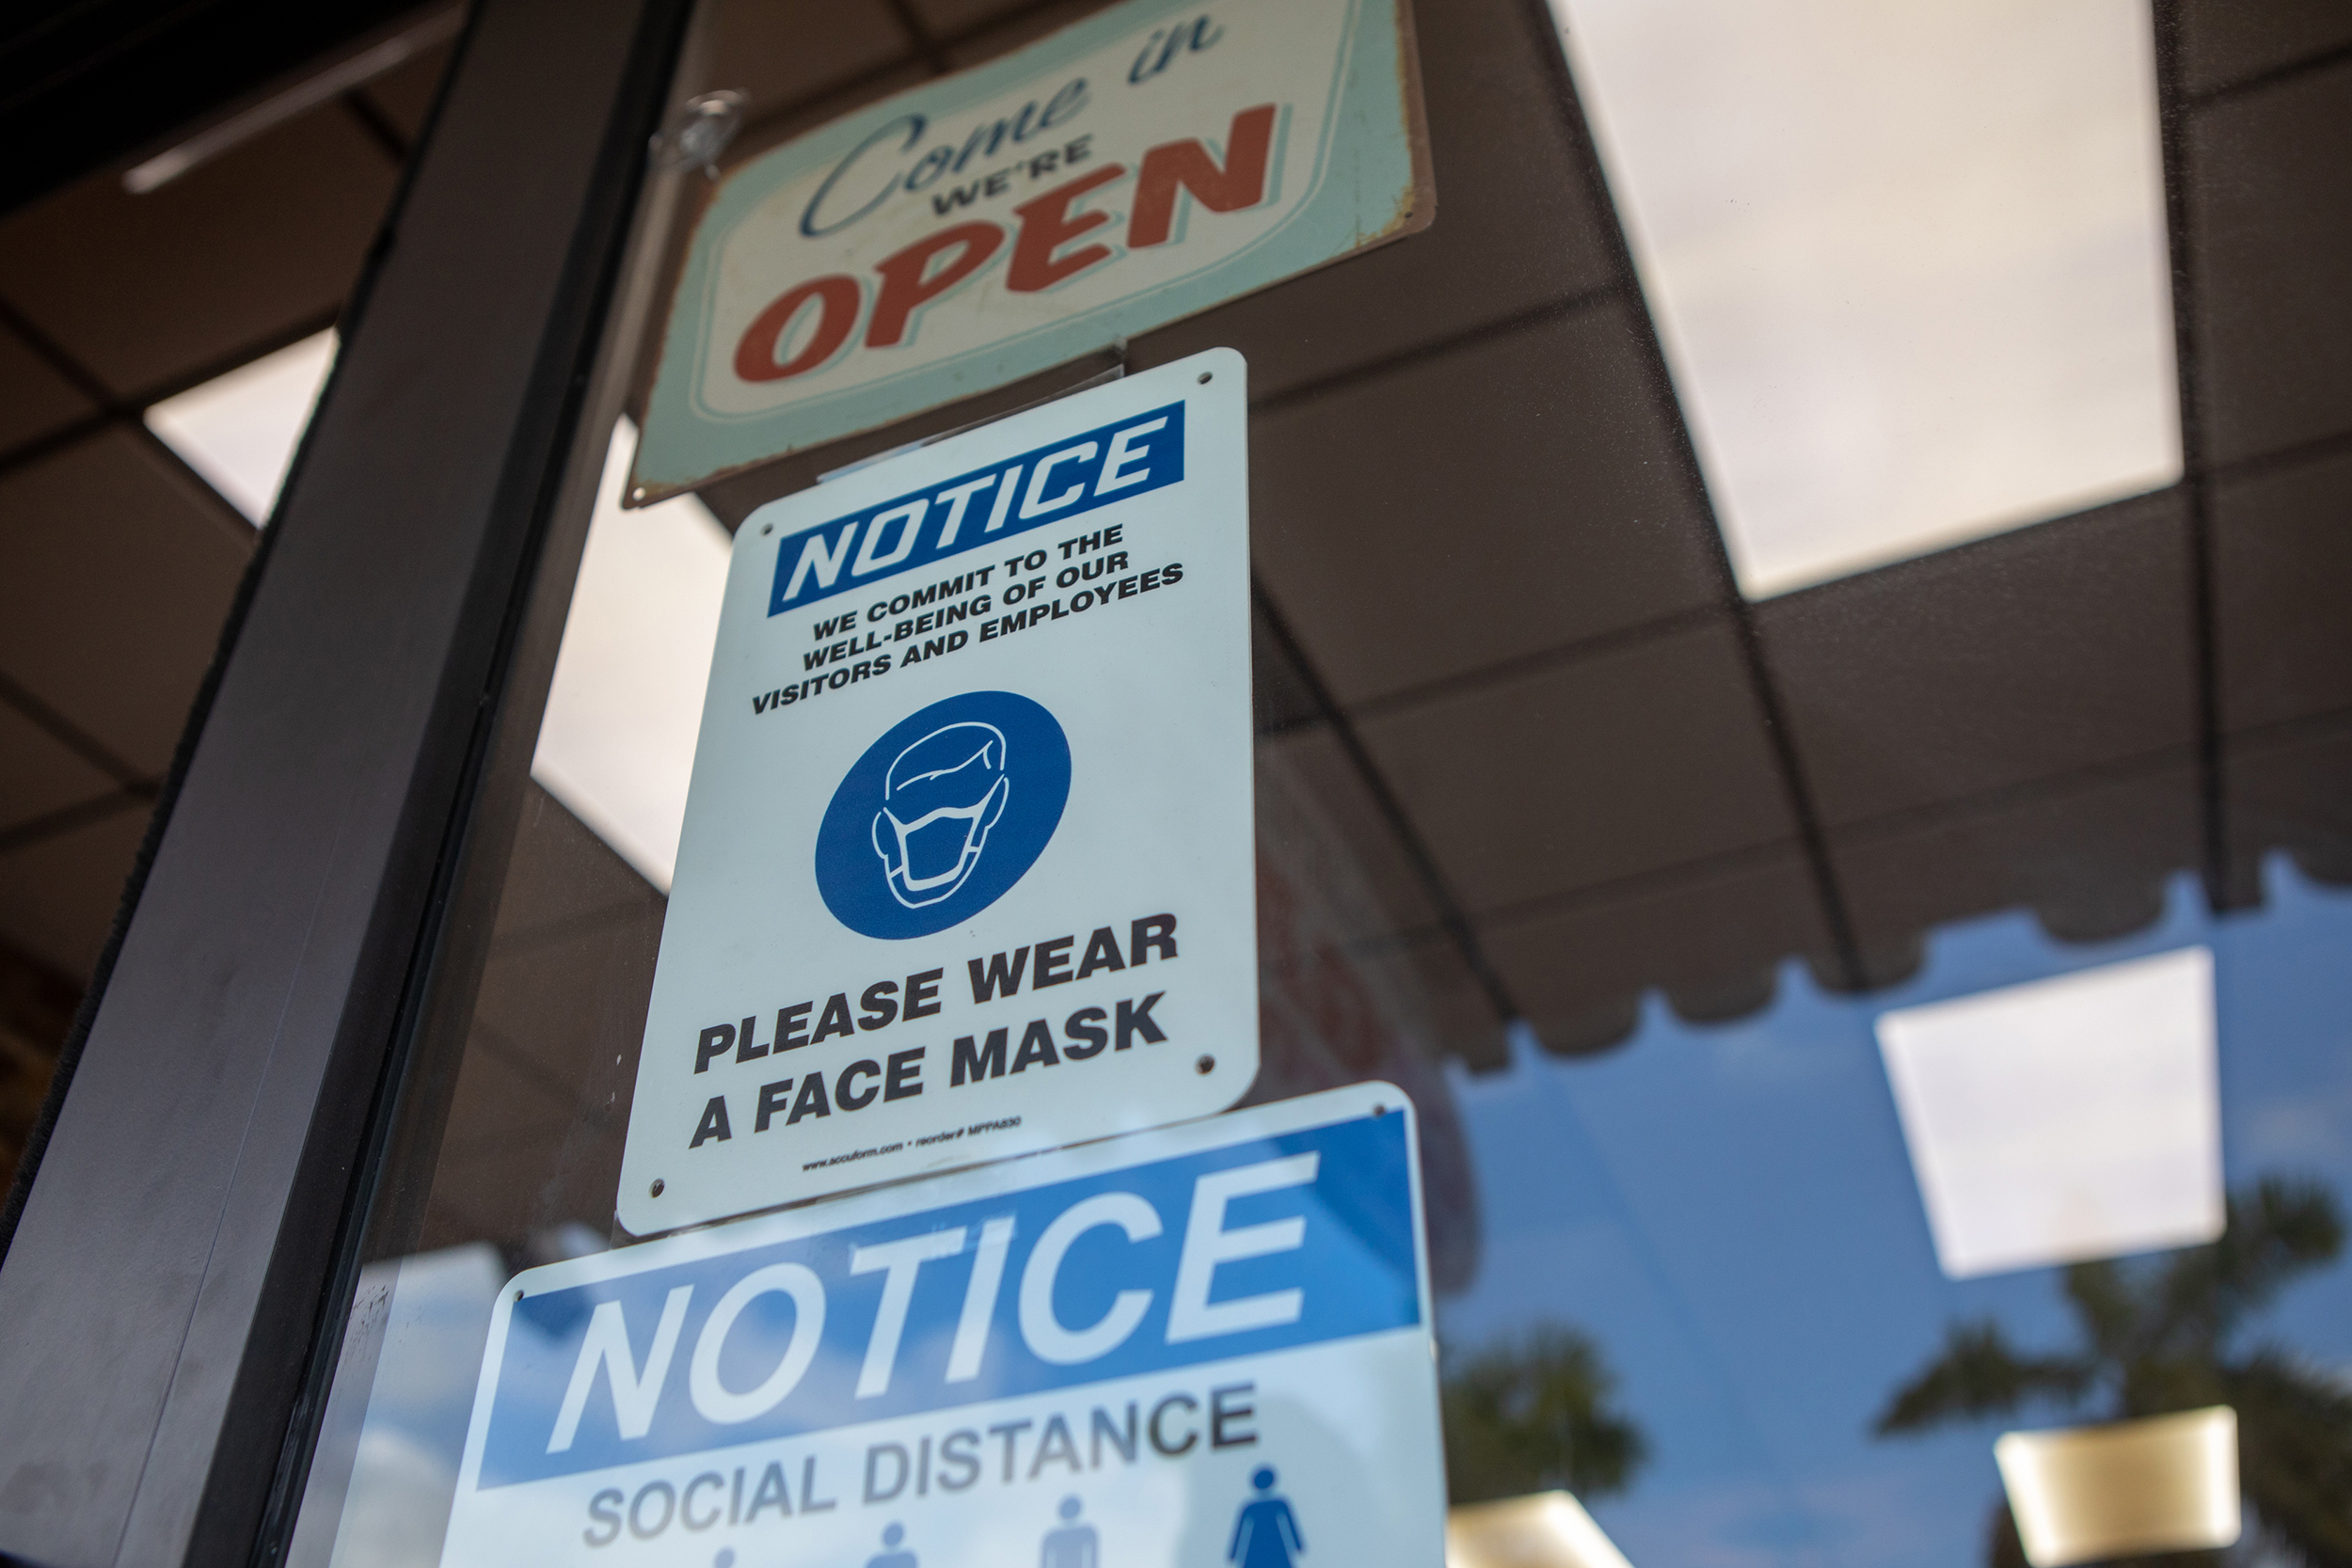 Social-distancing and mask wearing signs on a storefront during the 2020 Presidential election in Miami, Florida, U.S., on Wednesday, Nov. 4, 2020. Trump won two key states where hospitalizations for Covid-19 were among the highest in the U.S. in the past few days, Florida and Ohio, suggesting the jump in cases during the campaign may have done less harm to the Republican camp than expected. Photographer: Jayme Gershen/Bloomberg via Getty Images